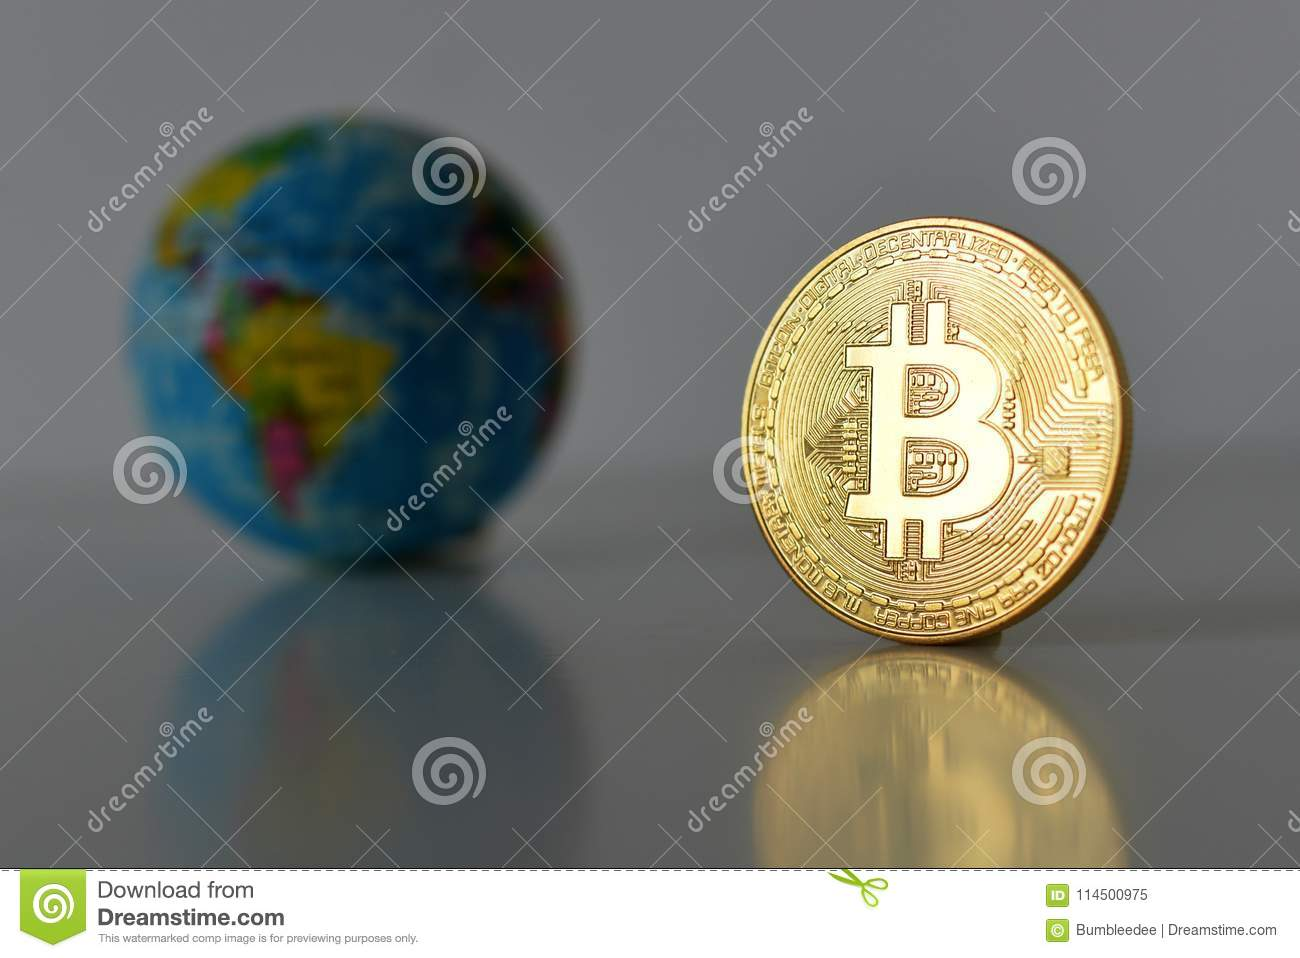 Are bitcoins the new world currency bet on war with iran